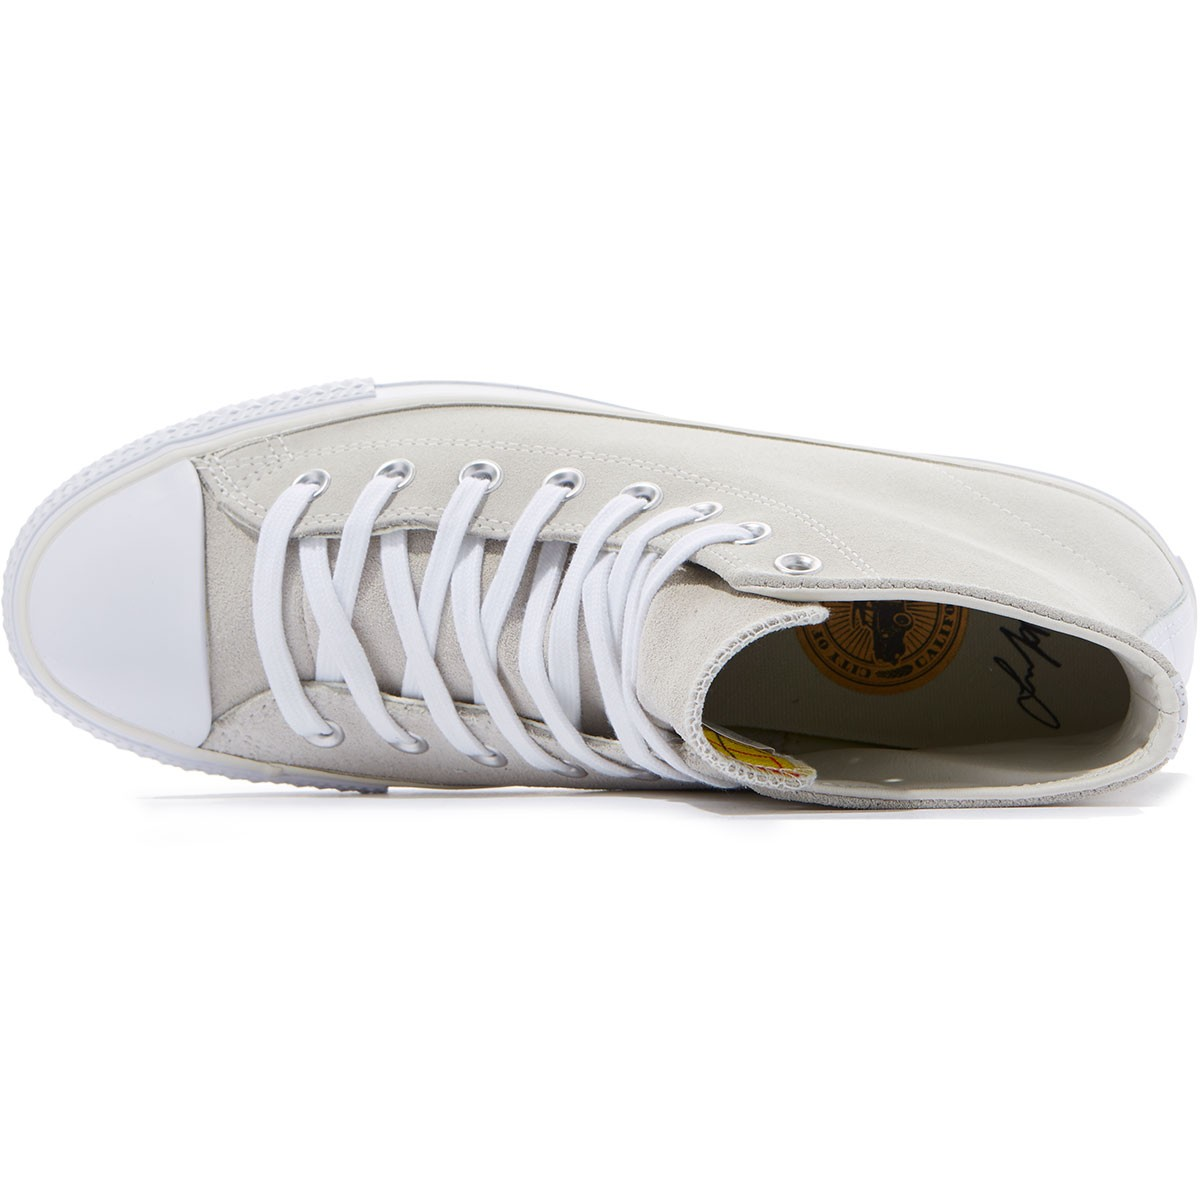 108391a25593 Converse CTAS Pro Hi Louie Lopez Suede Shoes - Buff White Casino - 8.0